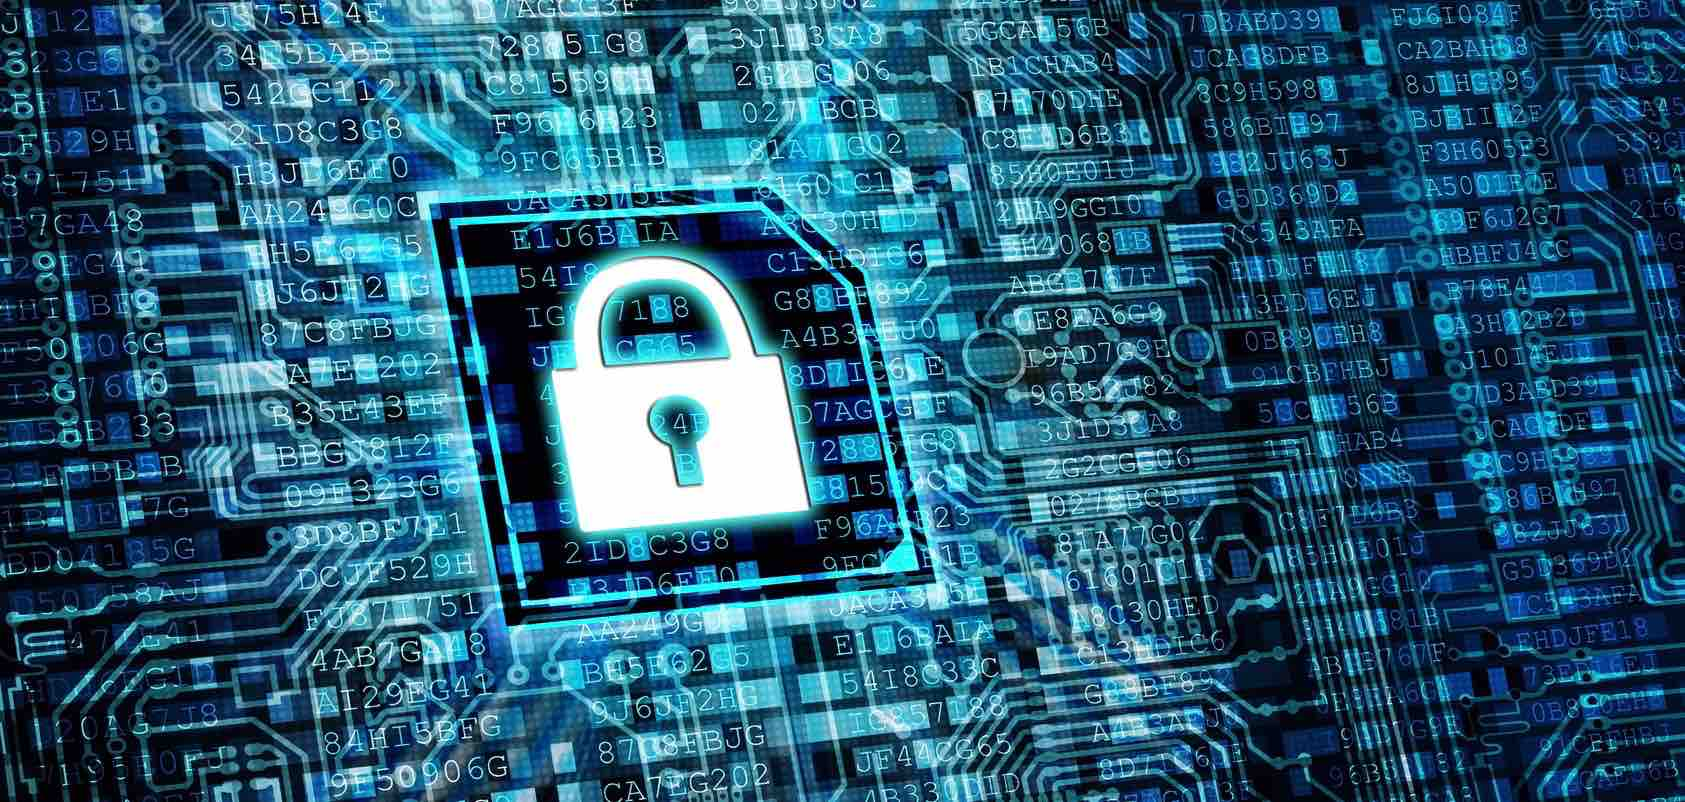 Why security is one of the biggest engineering challenges ahead